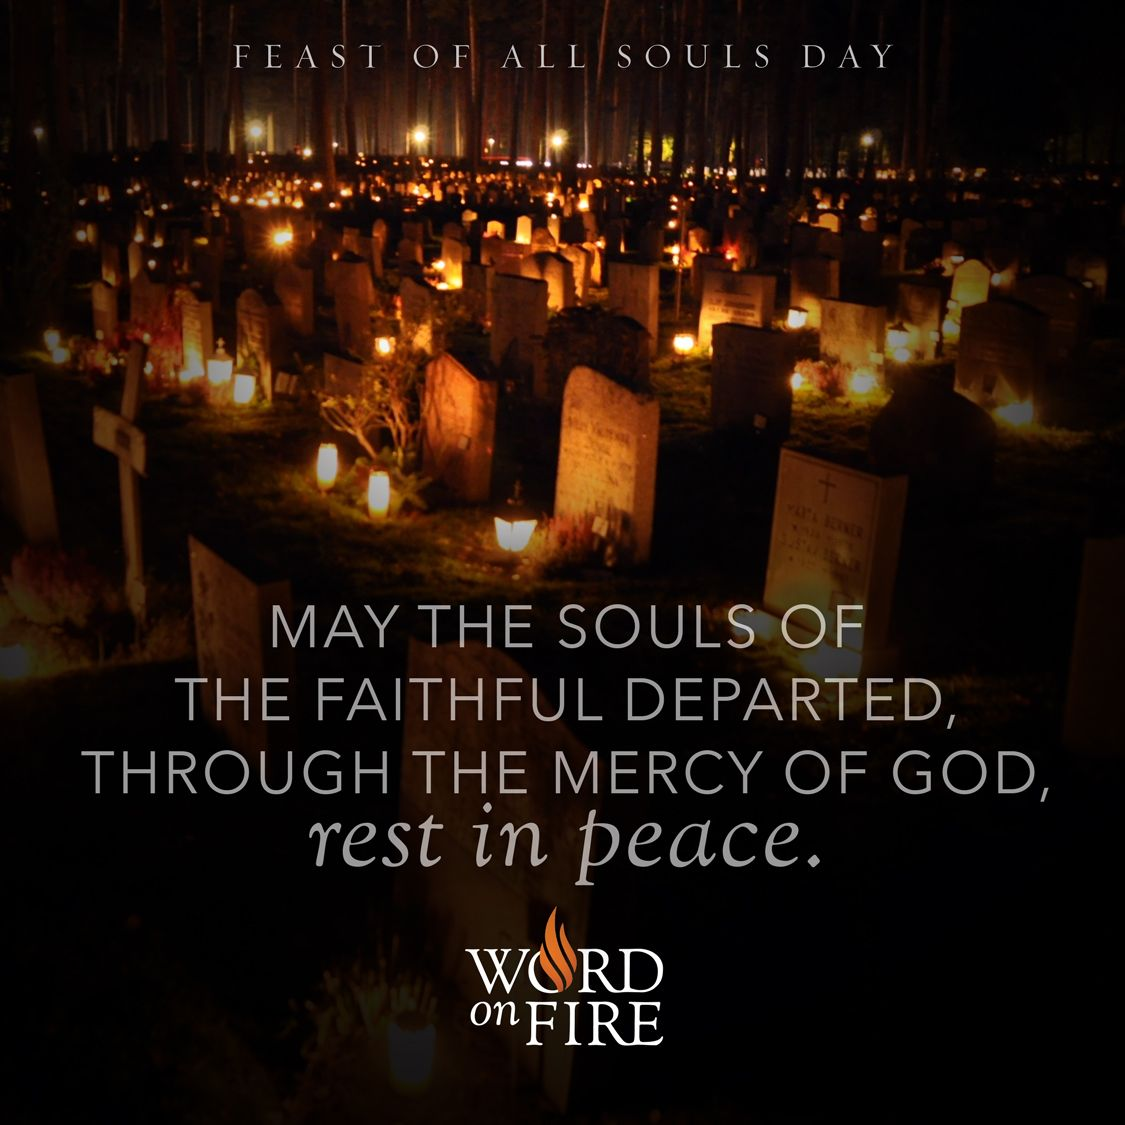 All Souls Day May The Souls Of The Faithful Departed